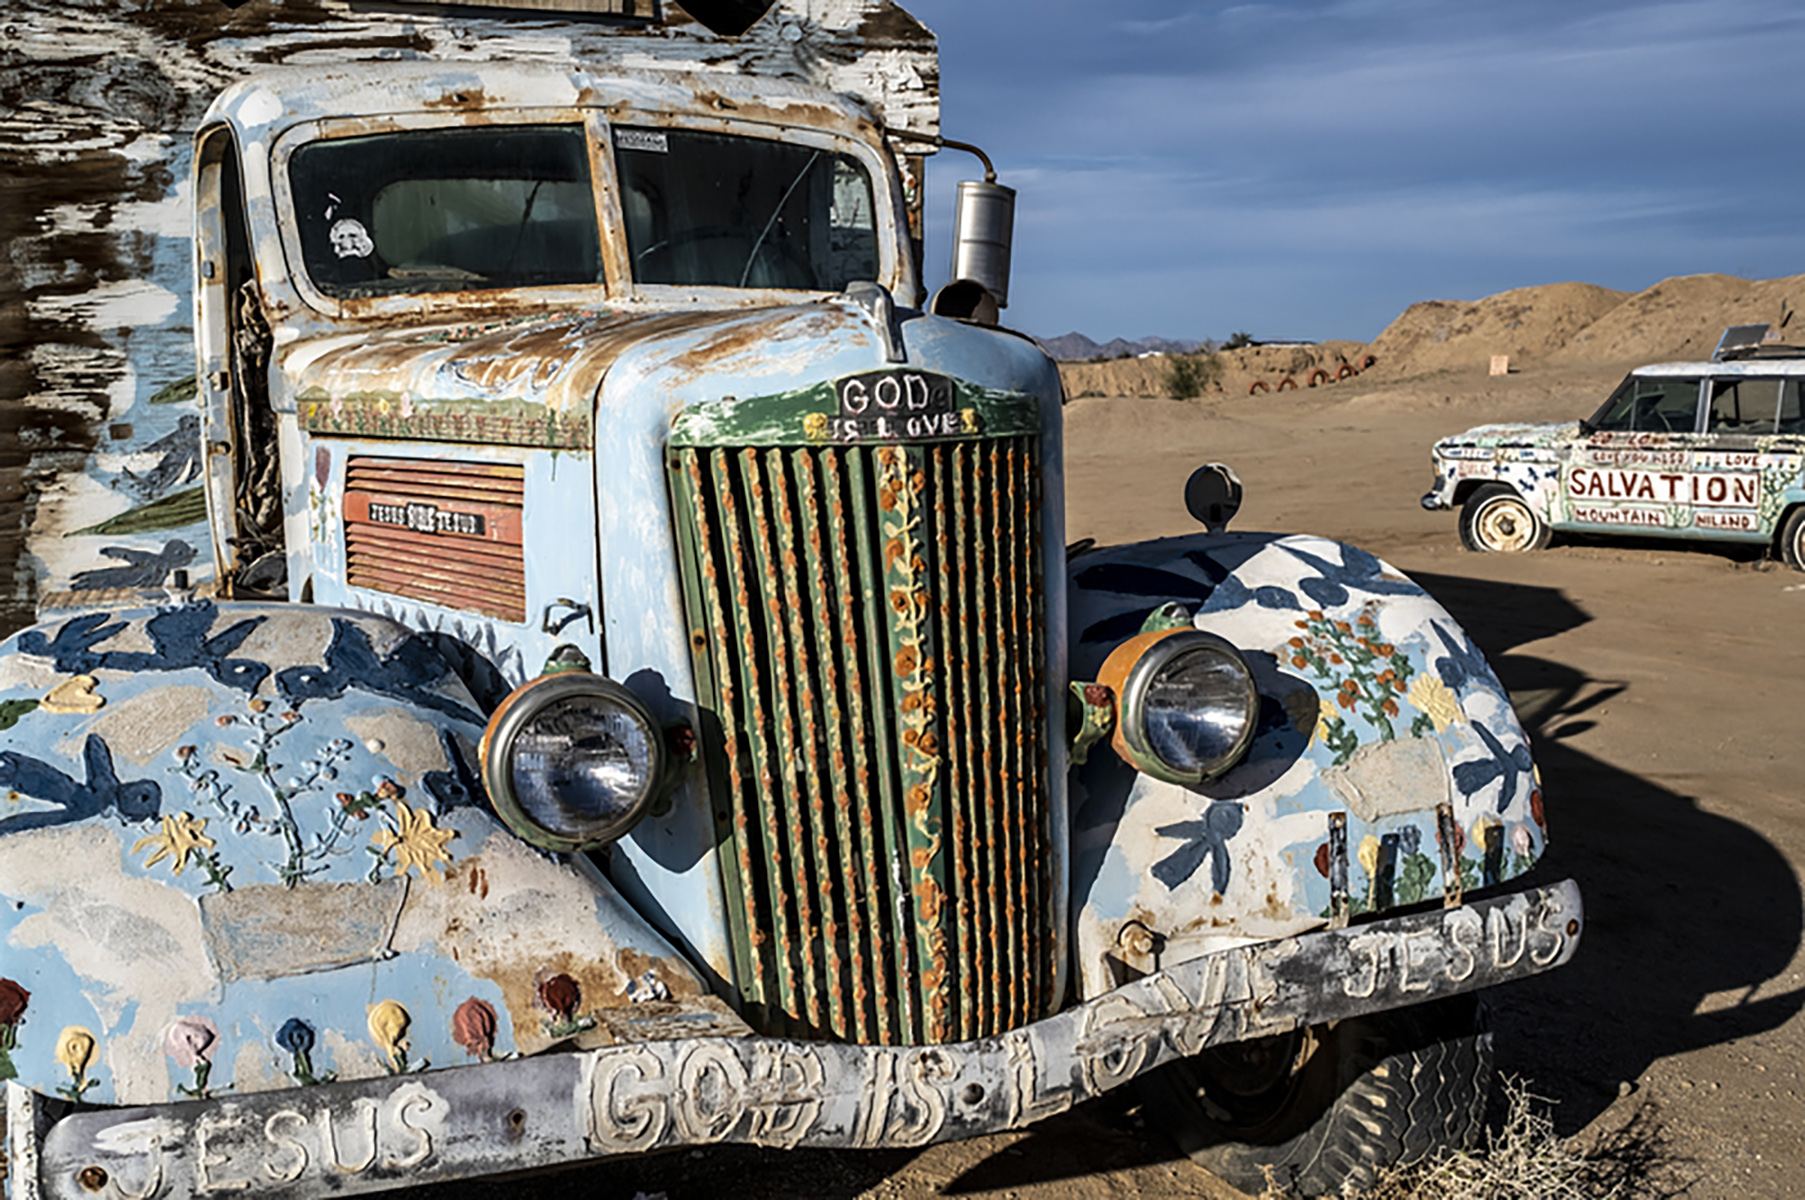 TruckwithspiritualmessagesatSalvationMountain